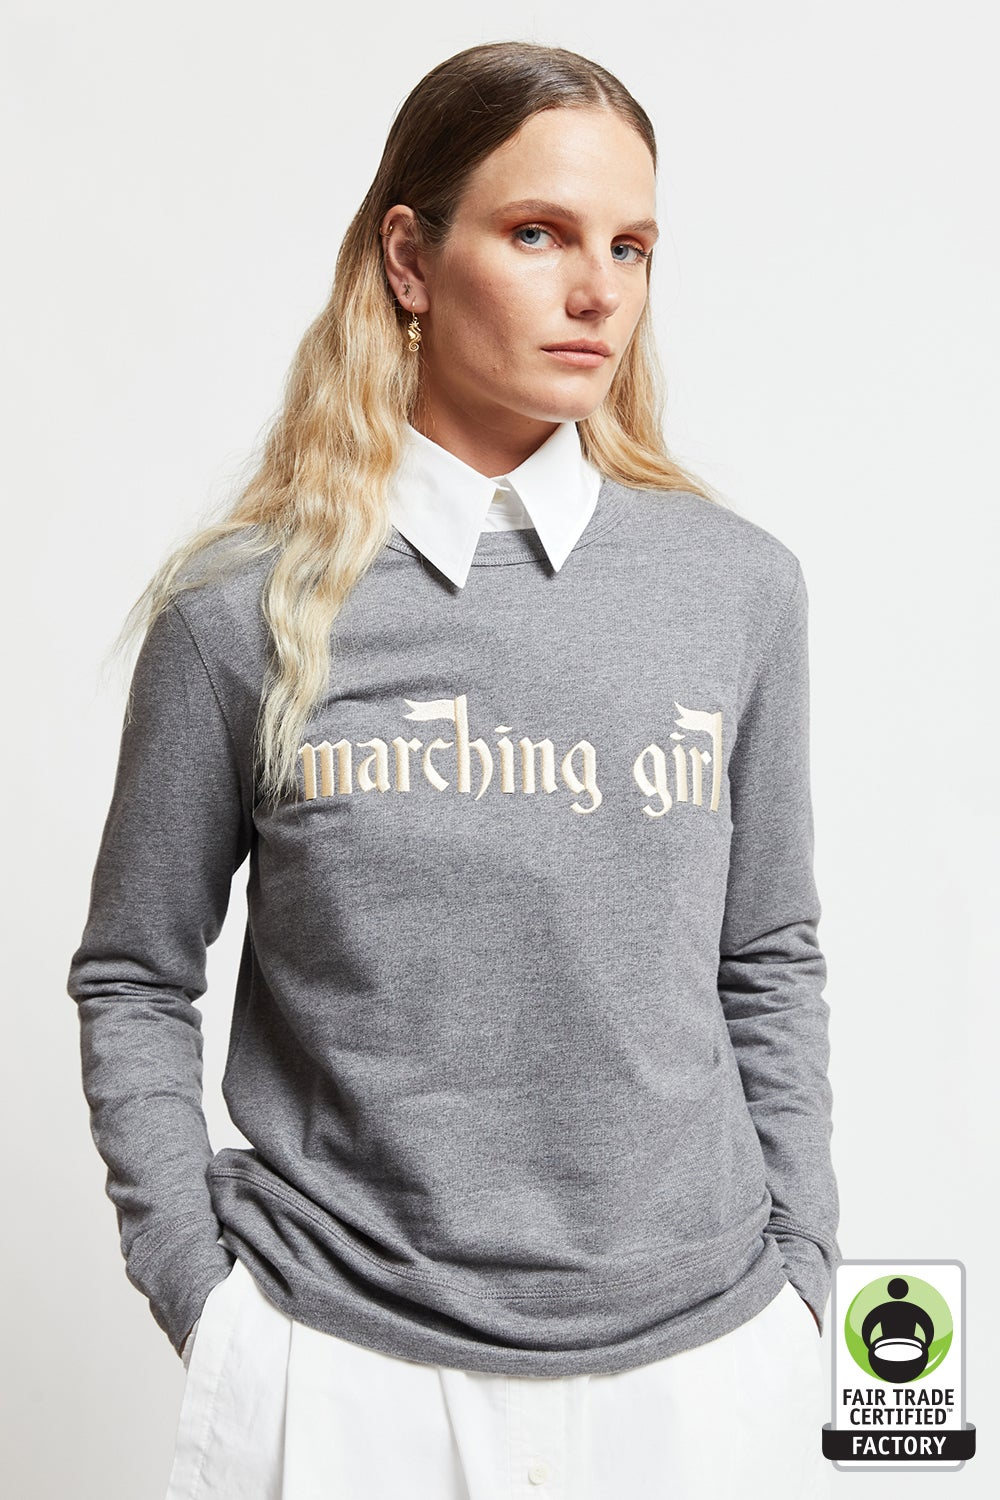 Embroidered Marching Girl Slogan Organic Cotton Sweatshirt